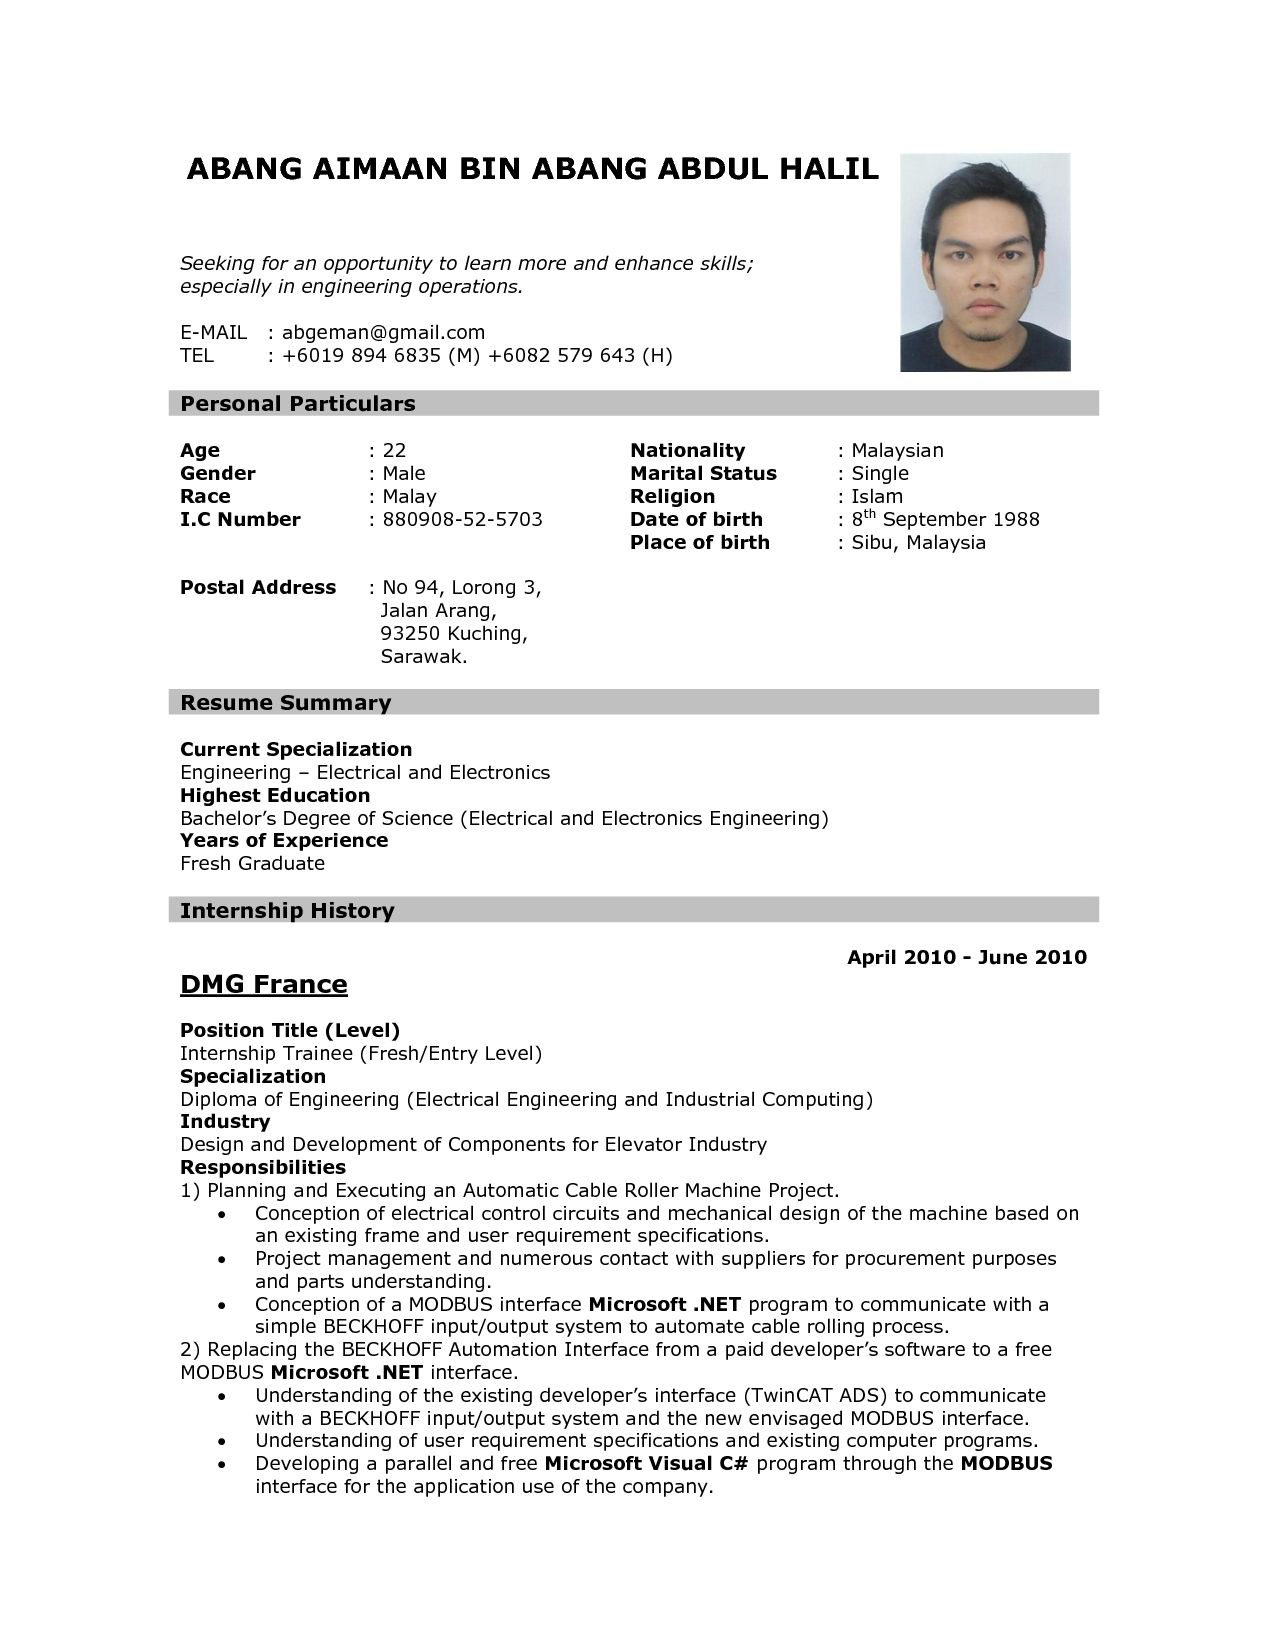 format of resume for job application to download data sample resume the sample resume for applying - Applicant Resume Sample Filipino Download